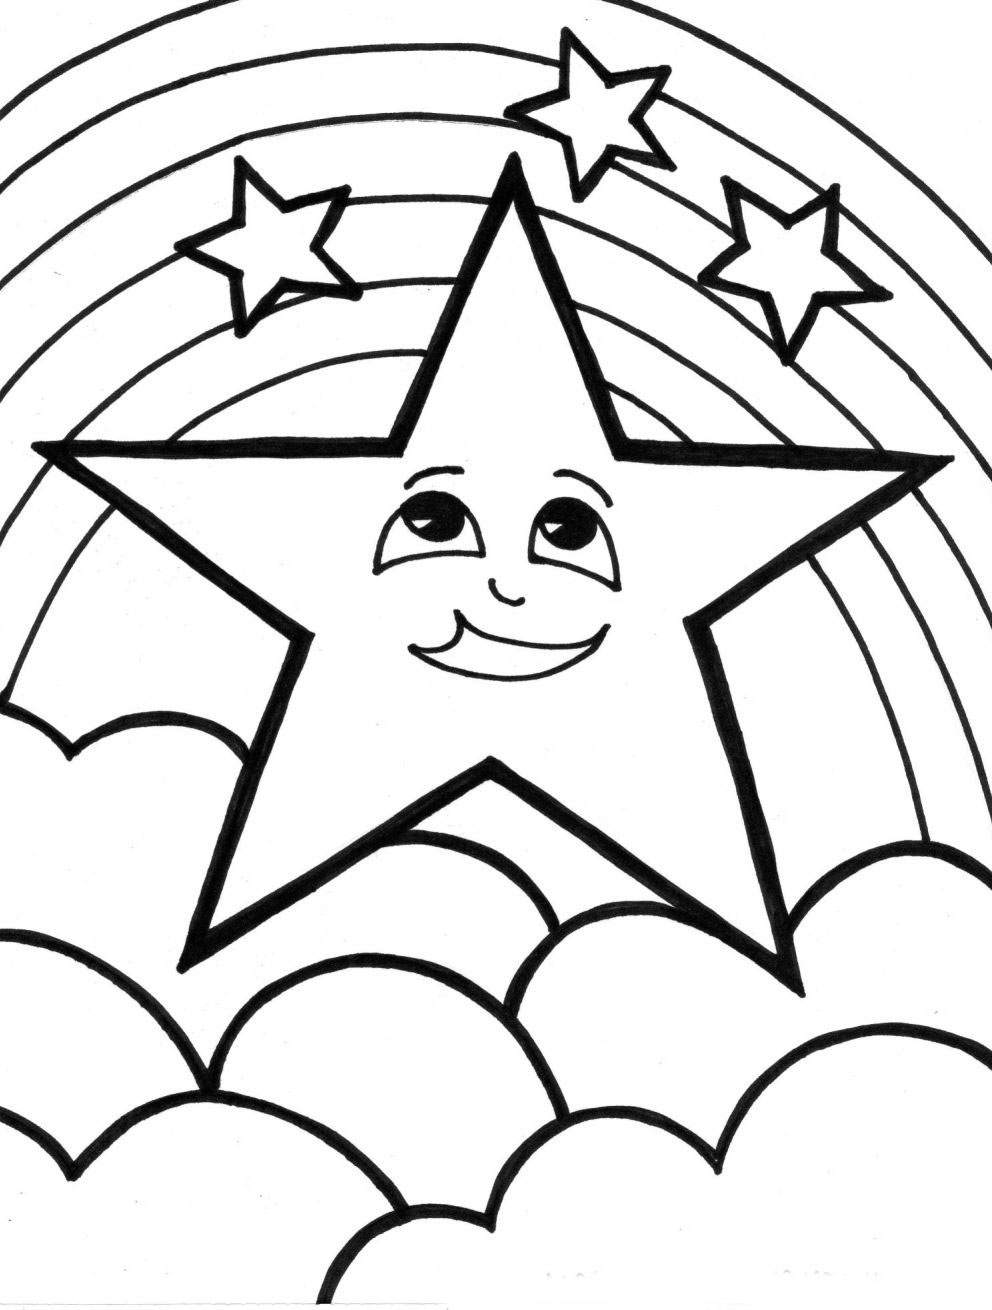 rainbow game - free colouring pages